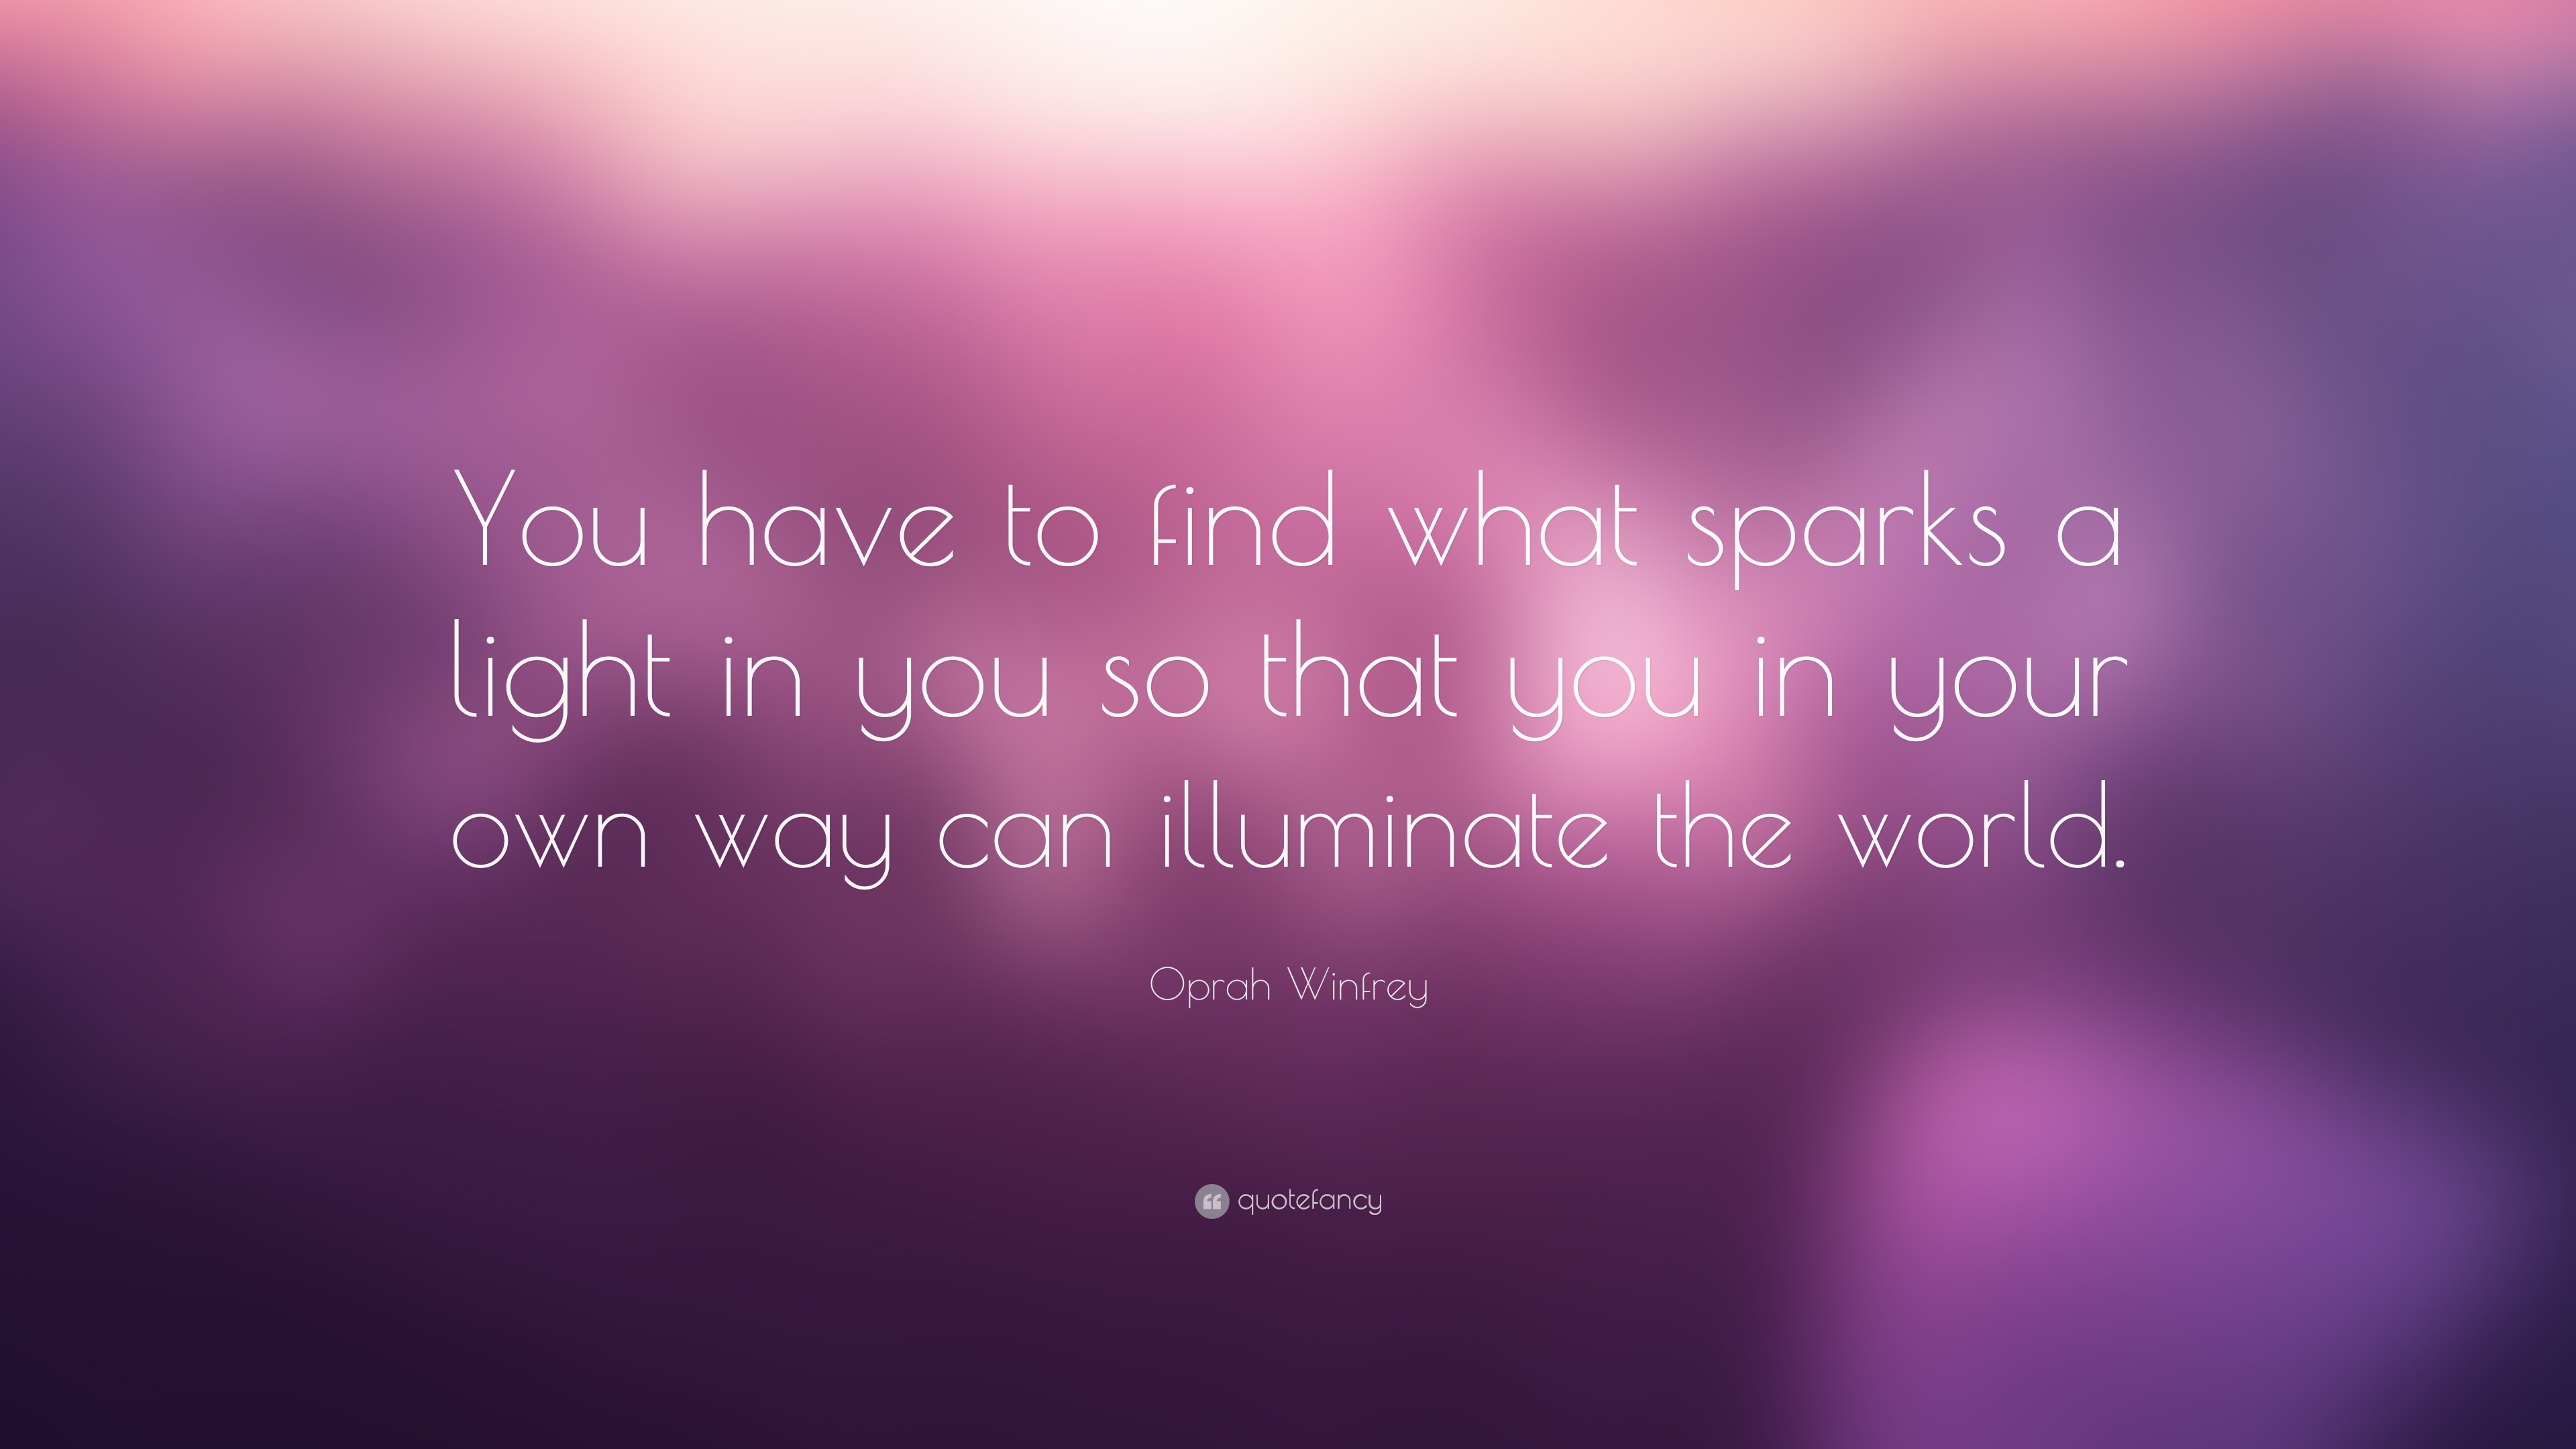 Oprah Winfrey Quote You Have To Find What Sparks A Light In You So